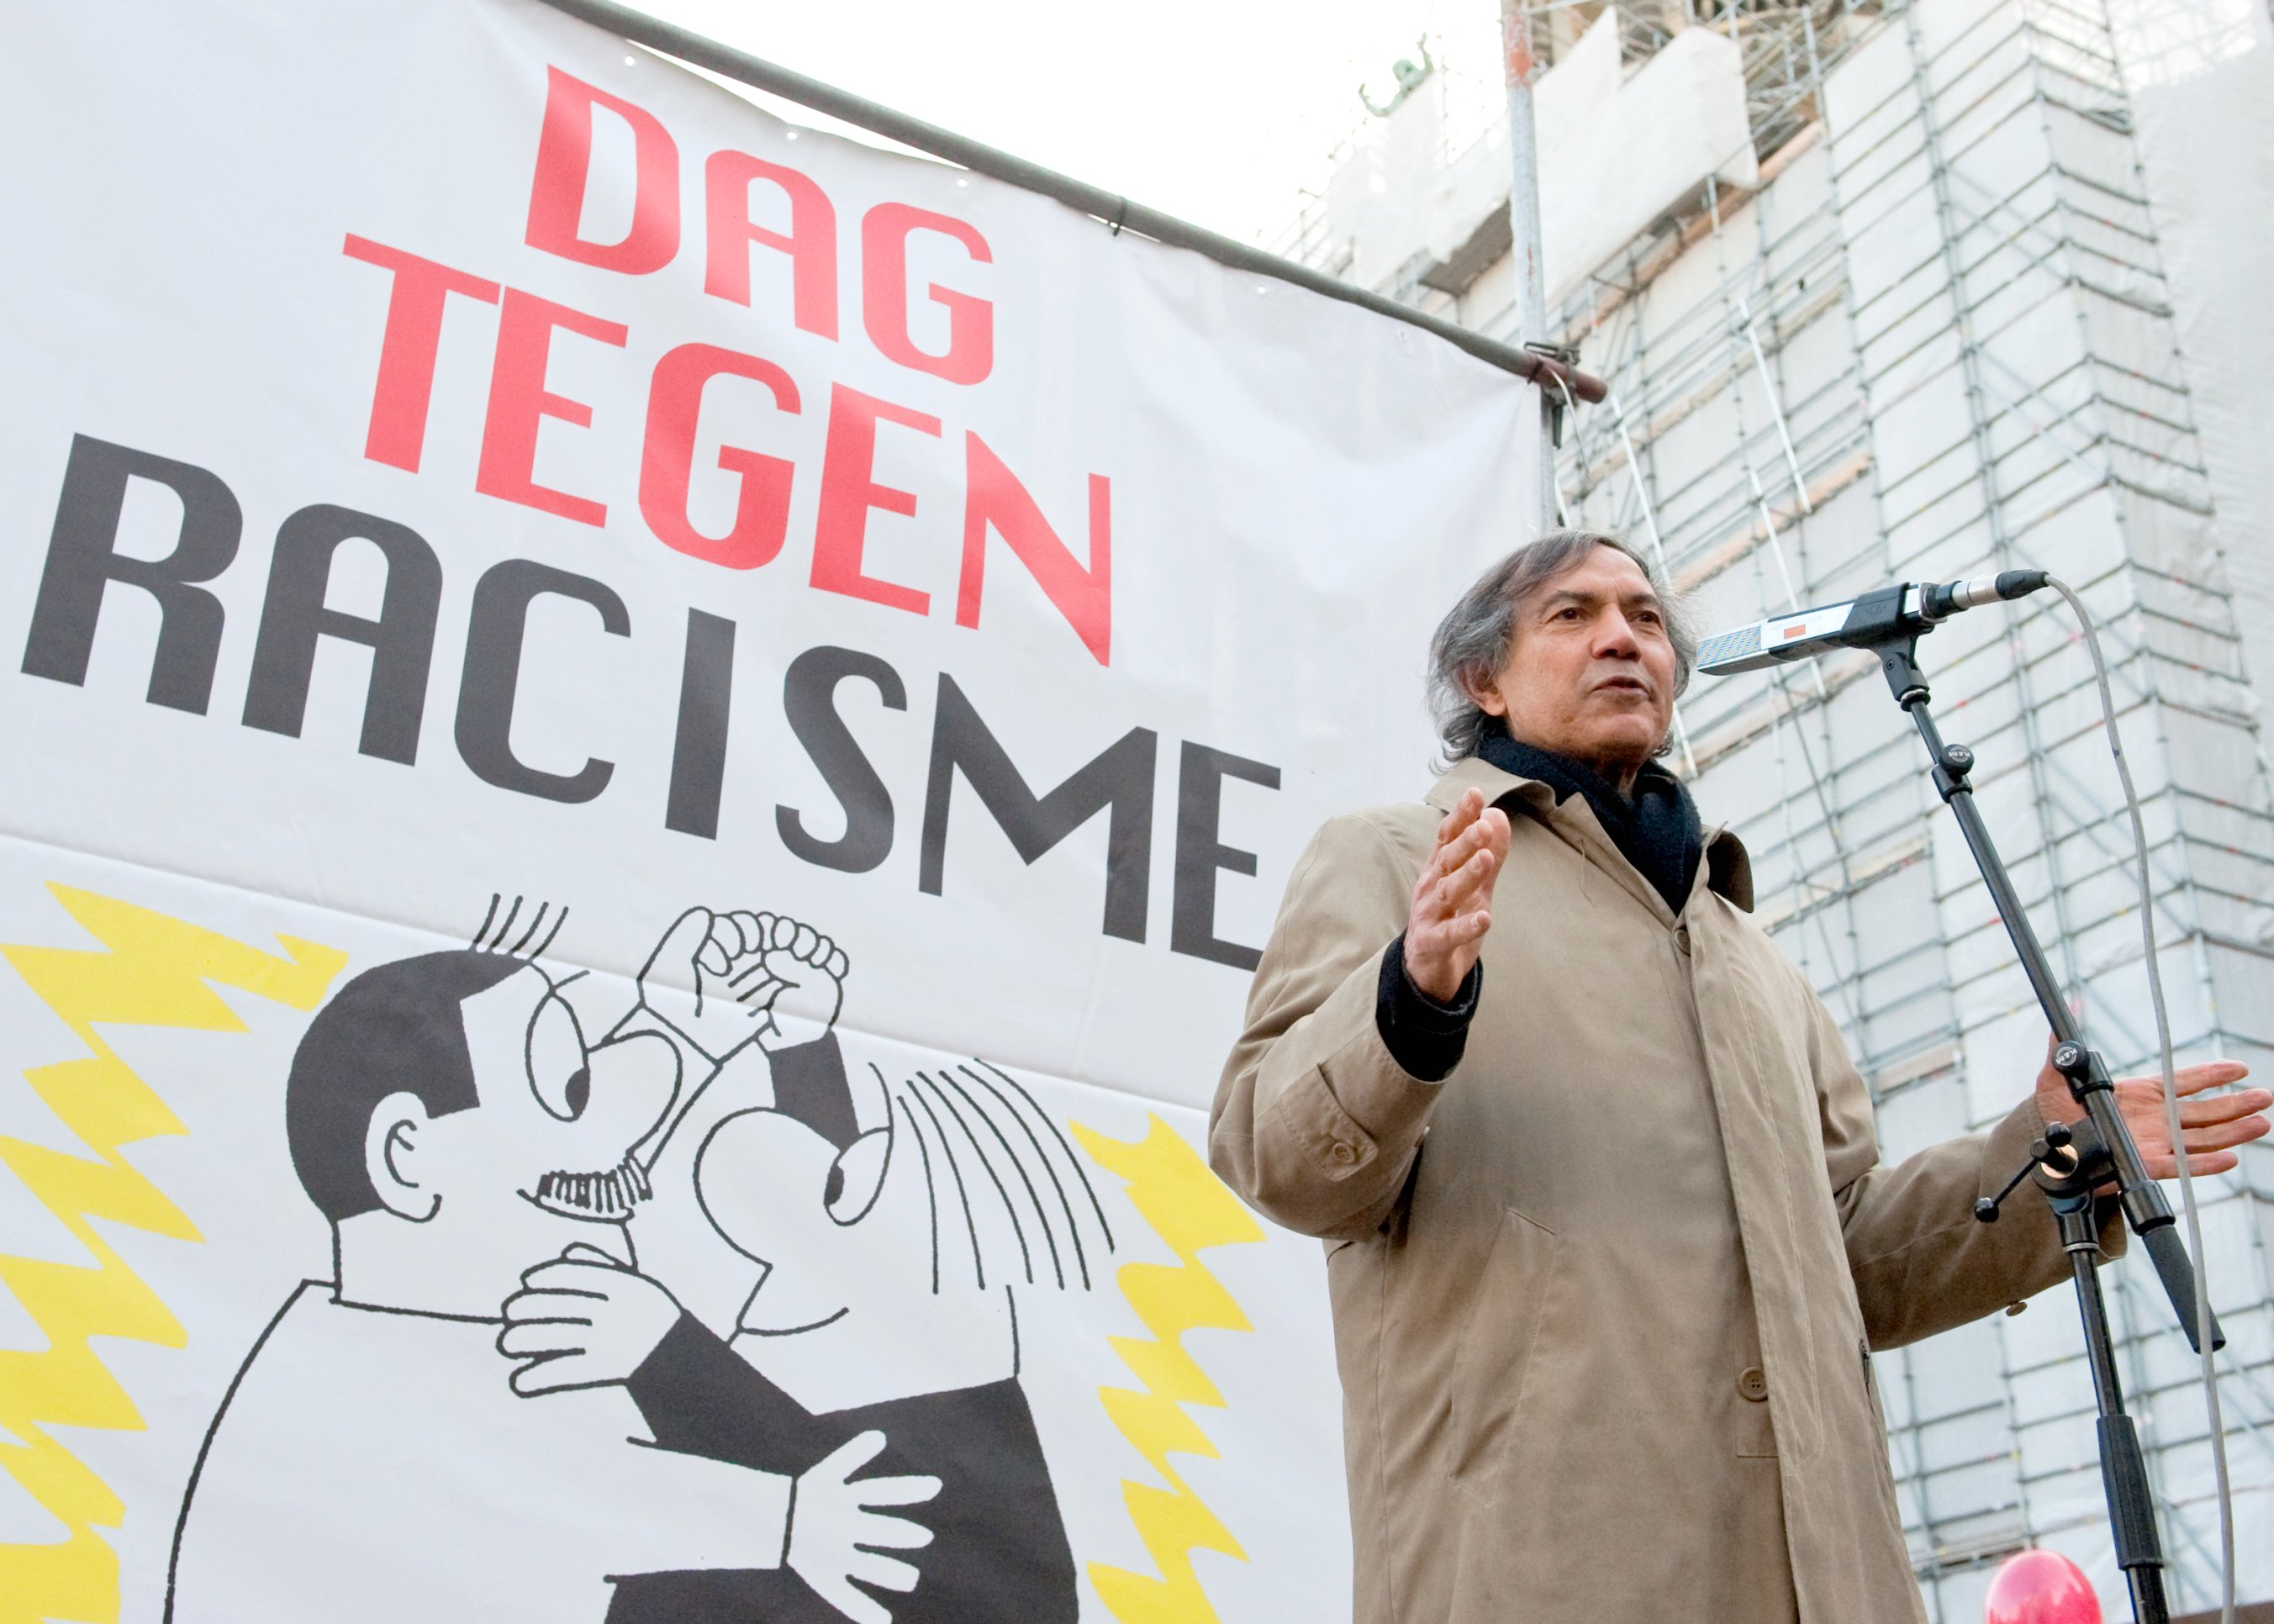 ... - NewsPhoto! - Internationale dag tegen racisme, Mohammed Rabbae.jpg